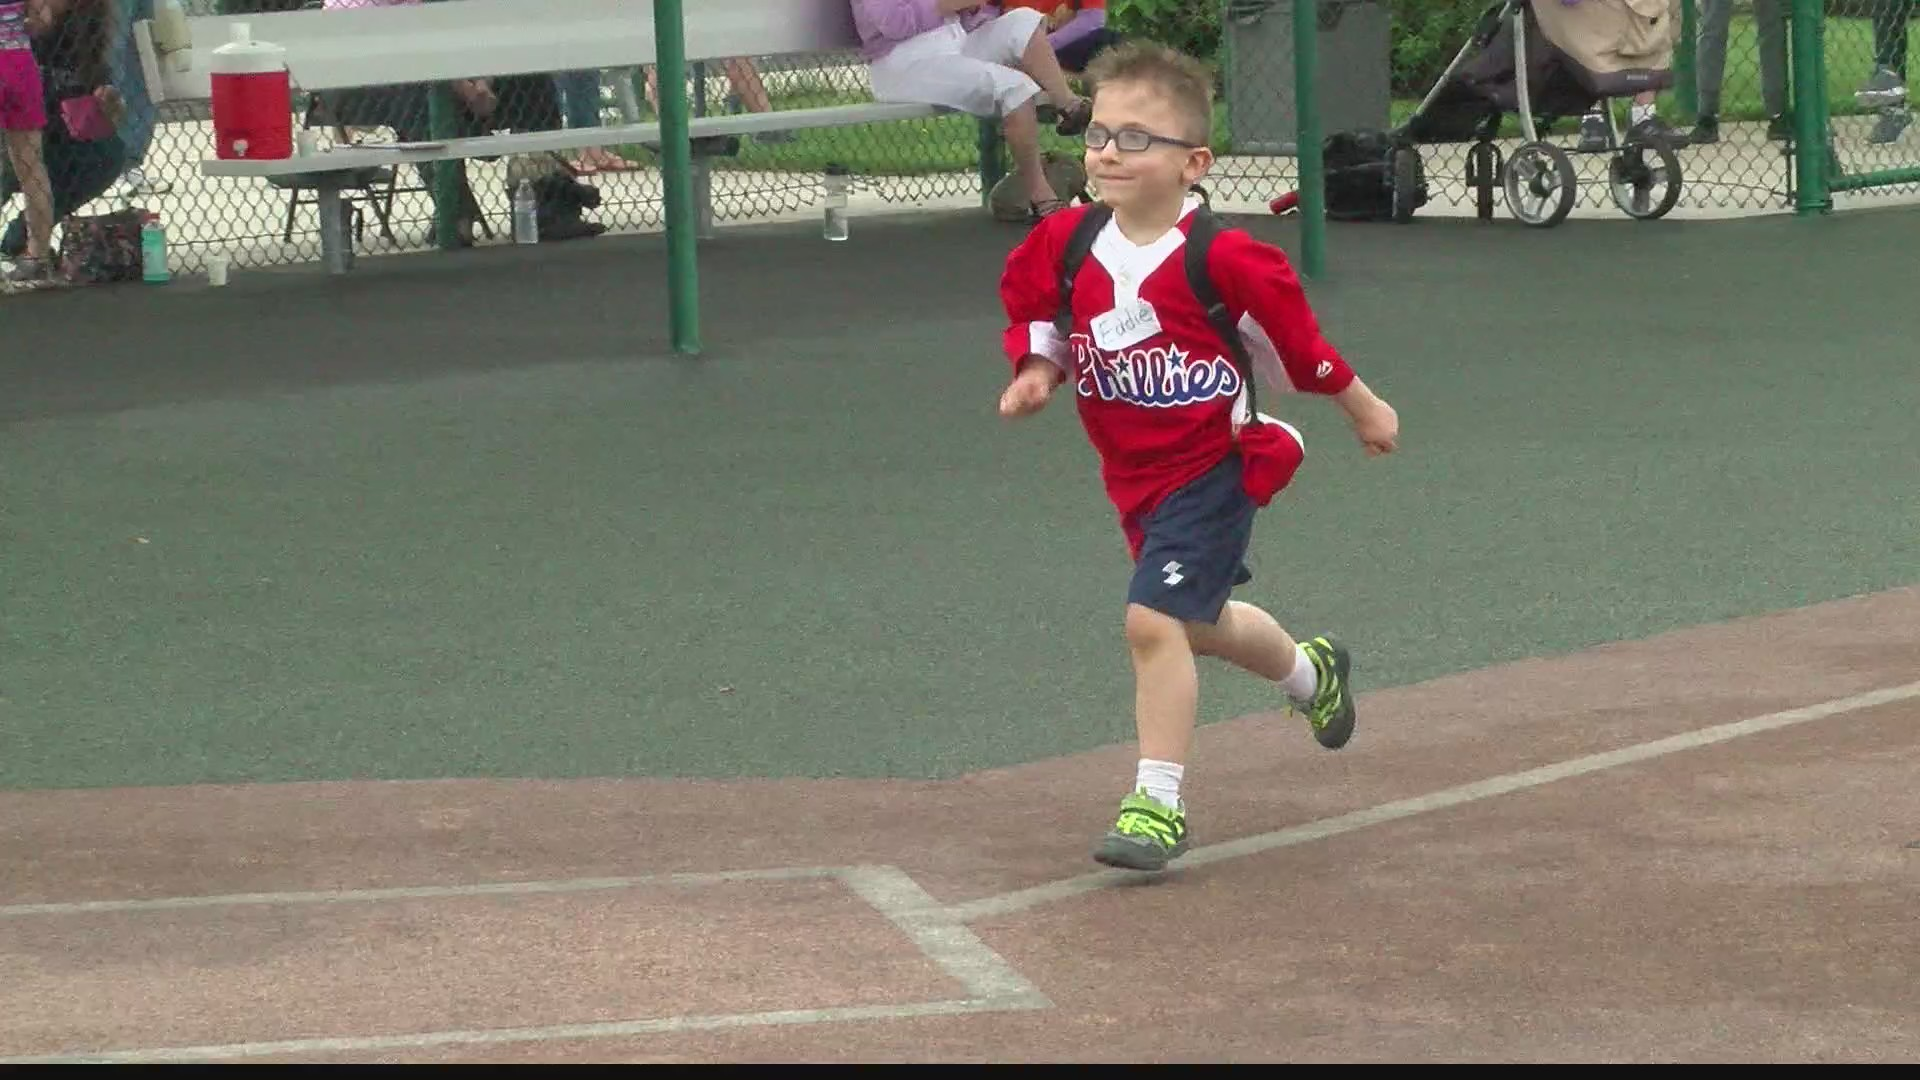 Miracle League has Opening Day